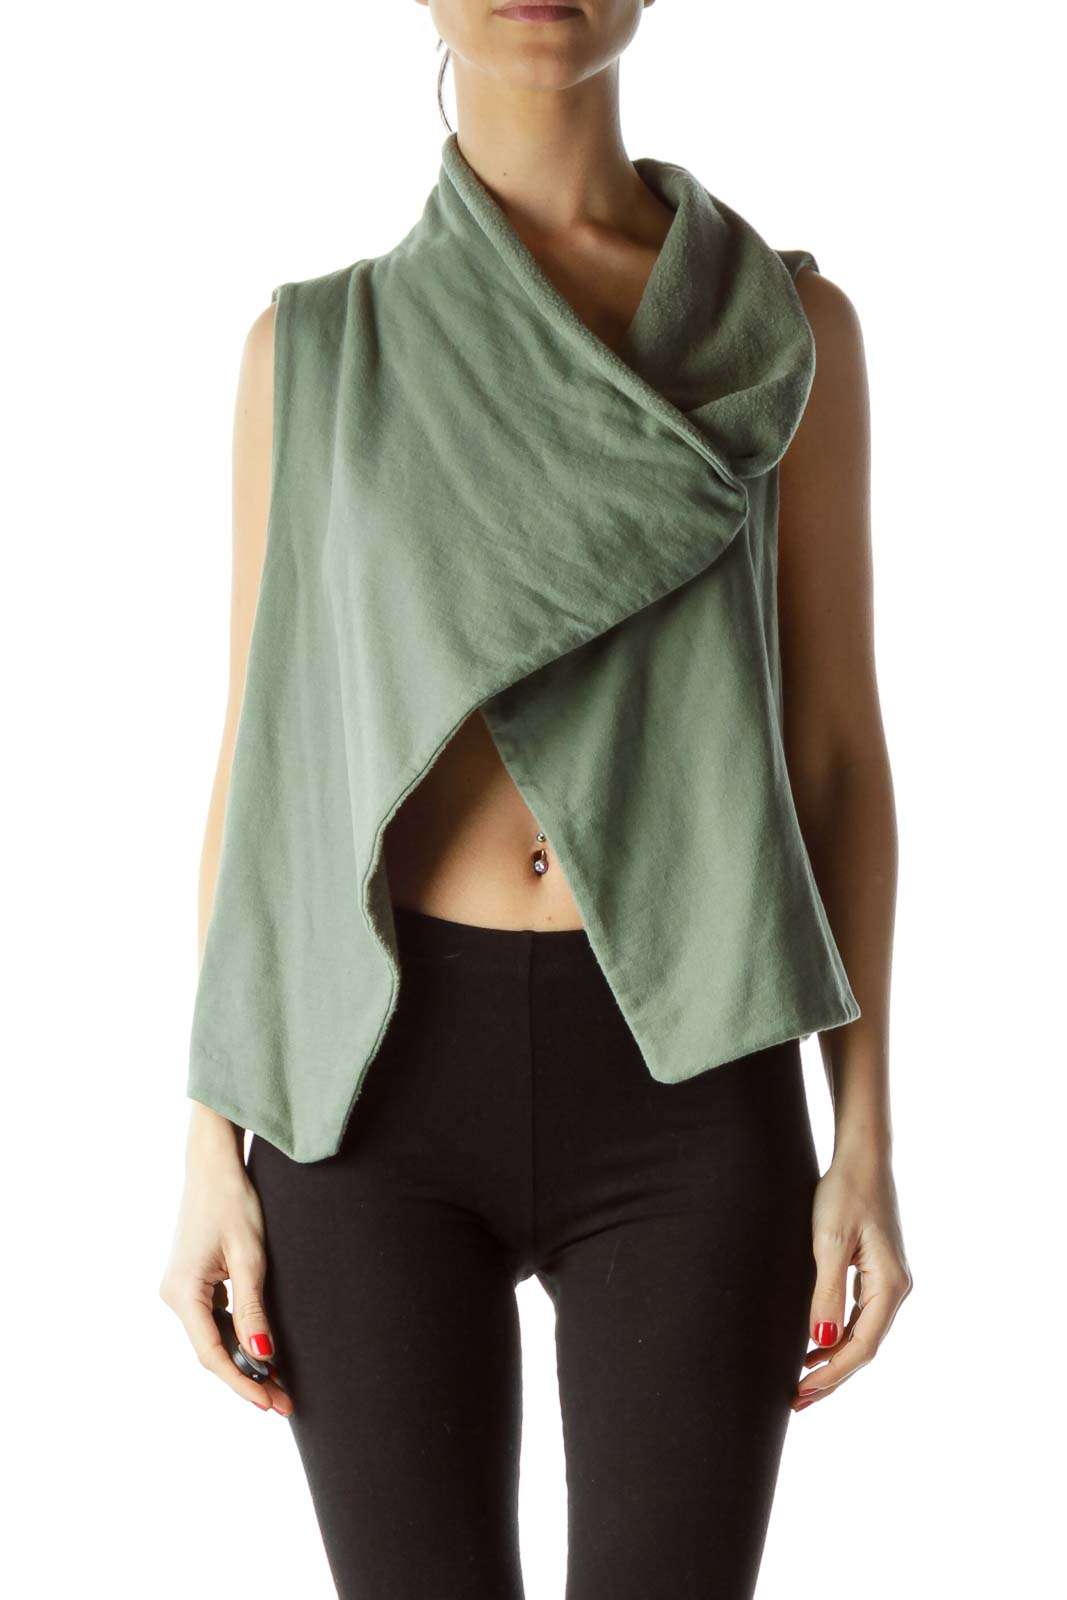 Green Fleece Collared Vest